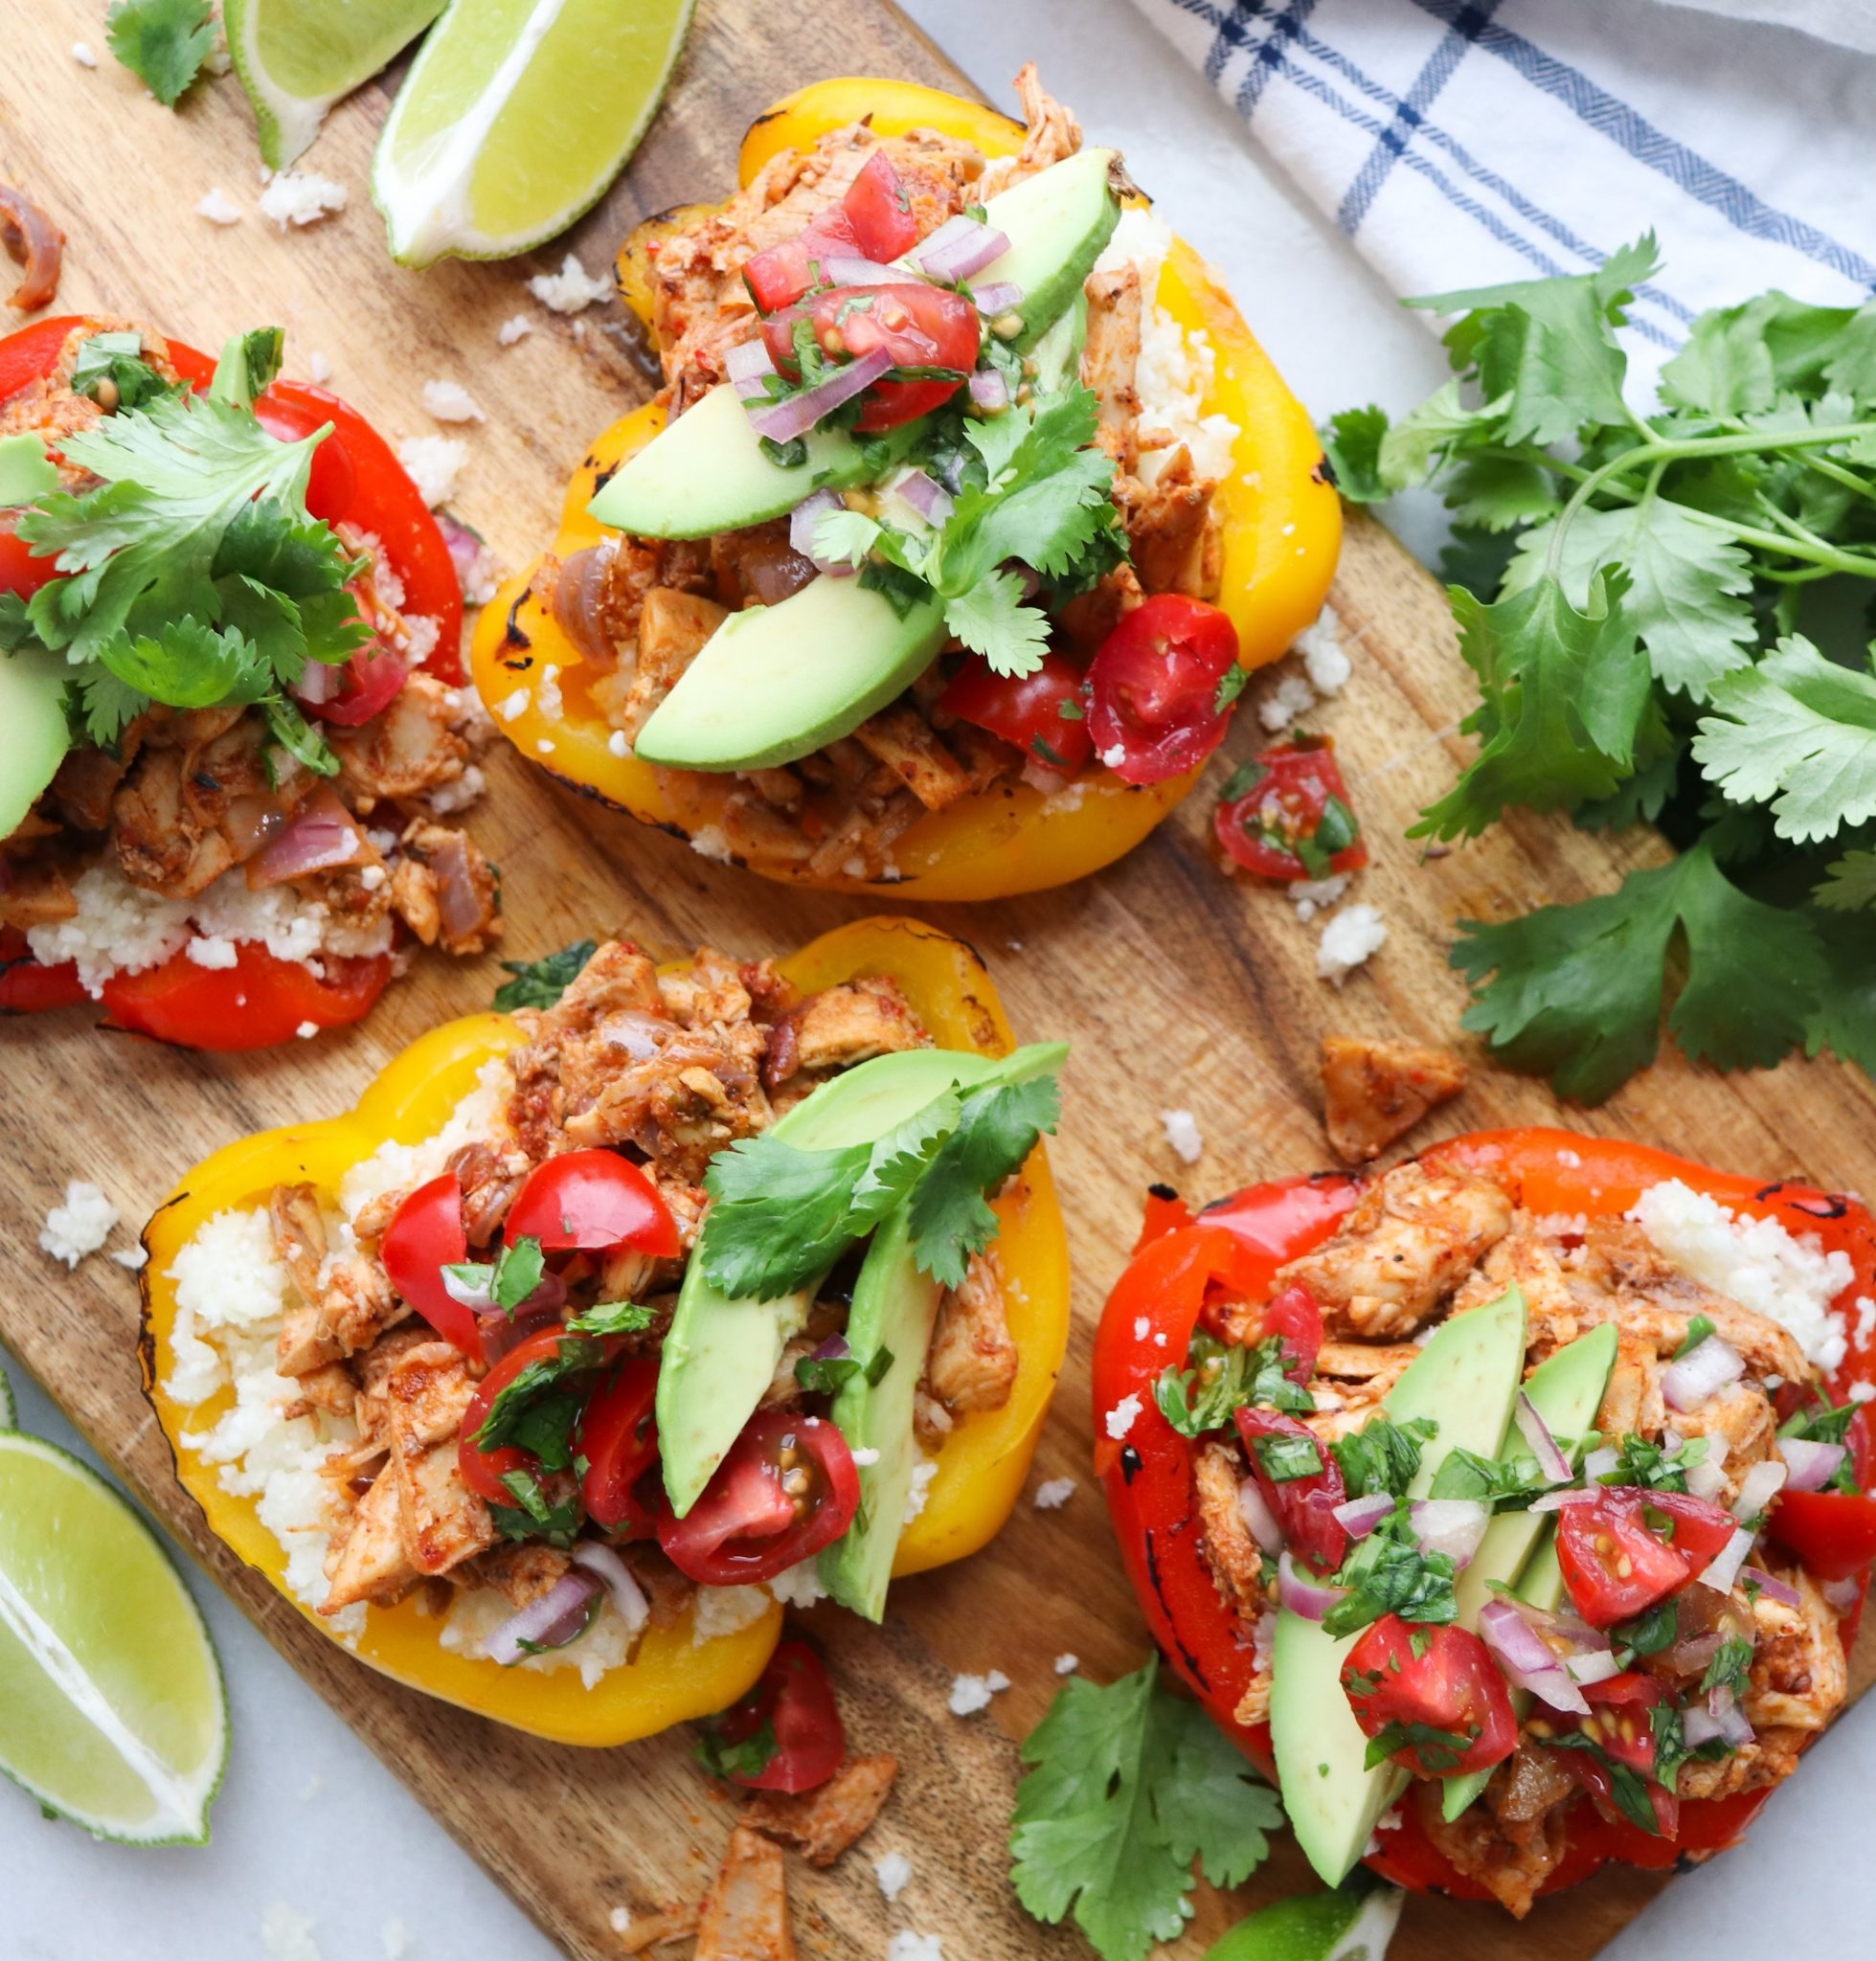 A bell pepper gently broiled and stuffed with tender chicken, cauliflower rice, fresh pico and avocado.